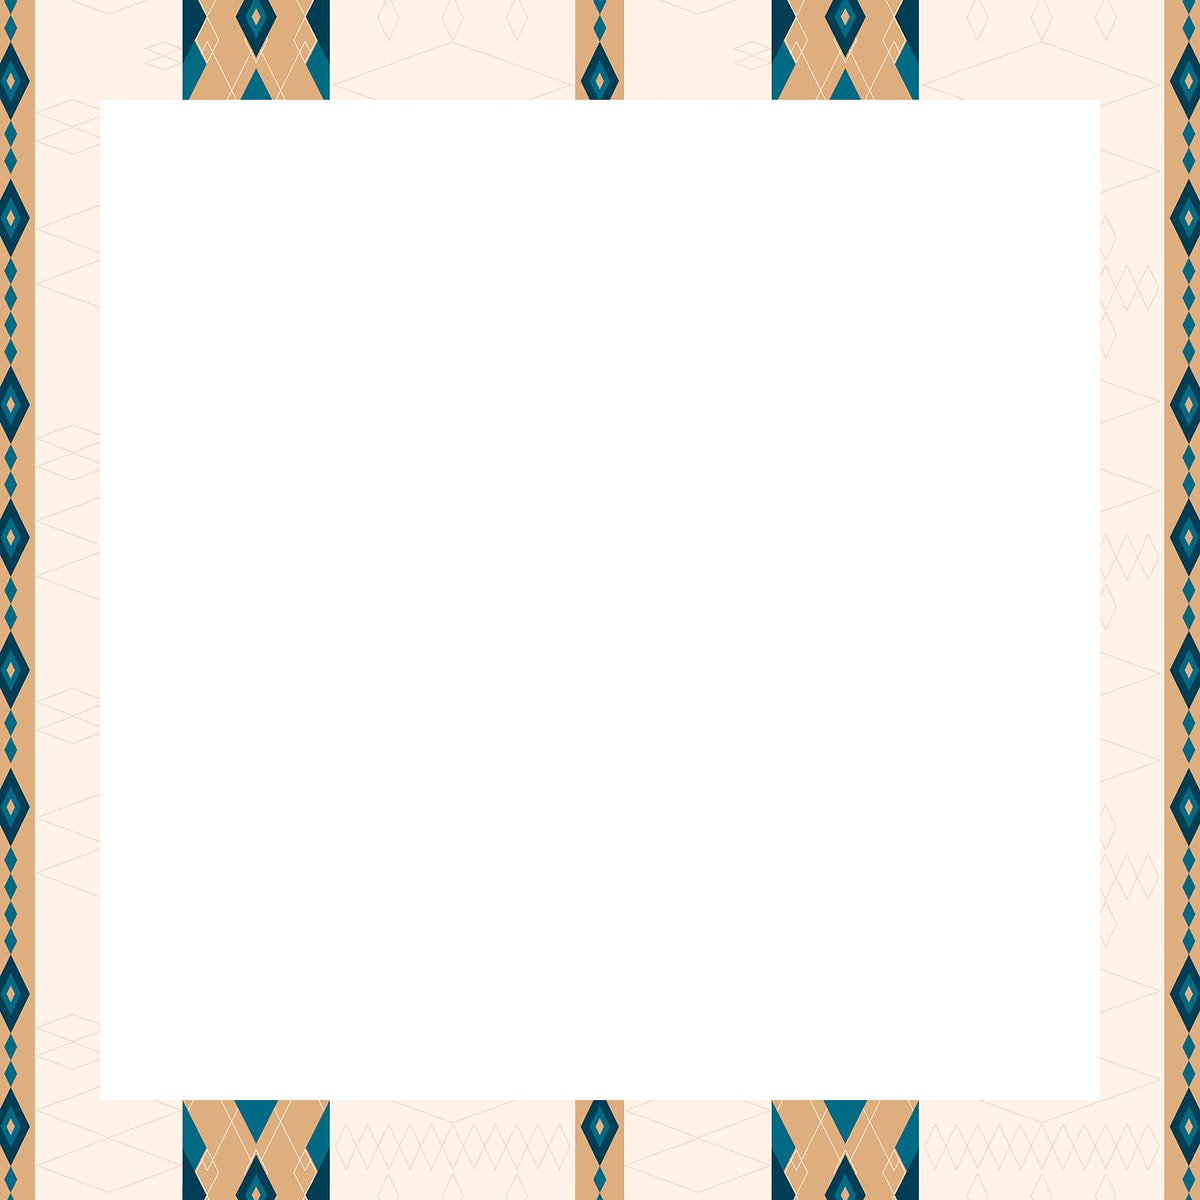 Beige seamless geometric patterned frame vector